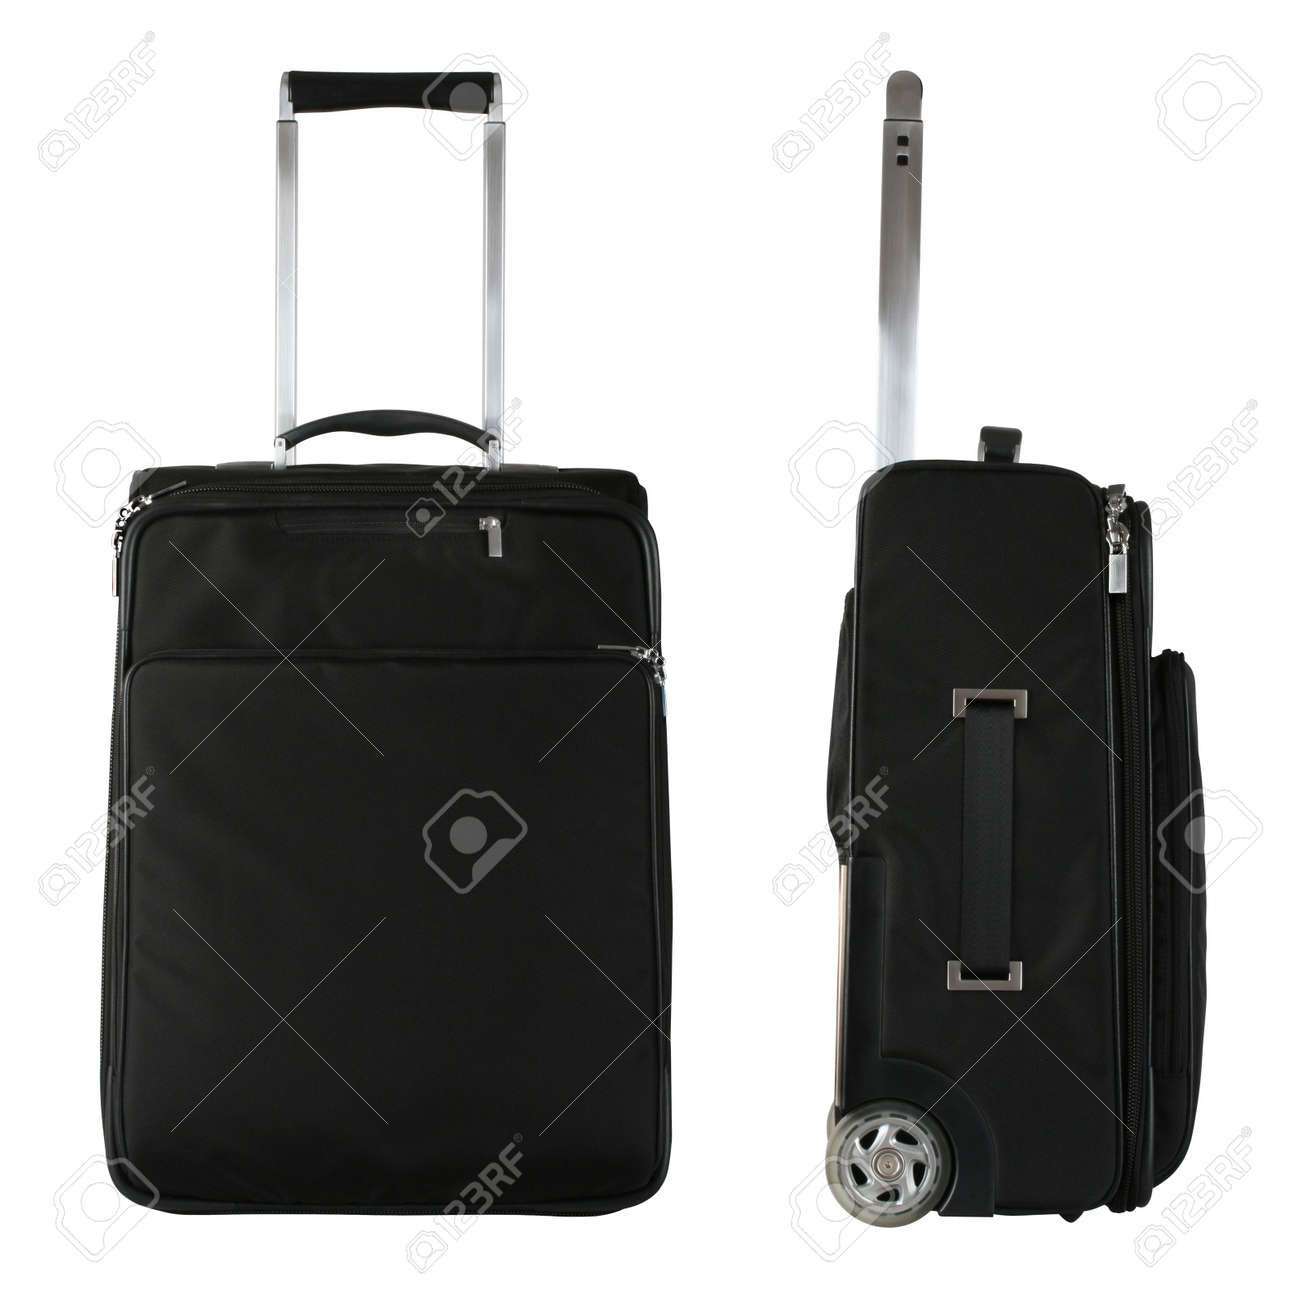 Black Travel Bag From Front And Side View Stock Photo, Picture And ...